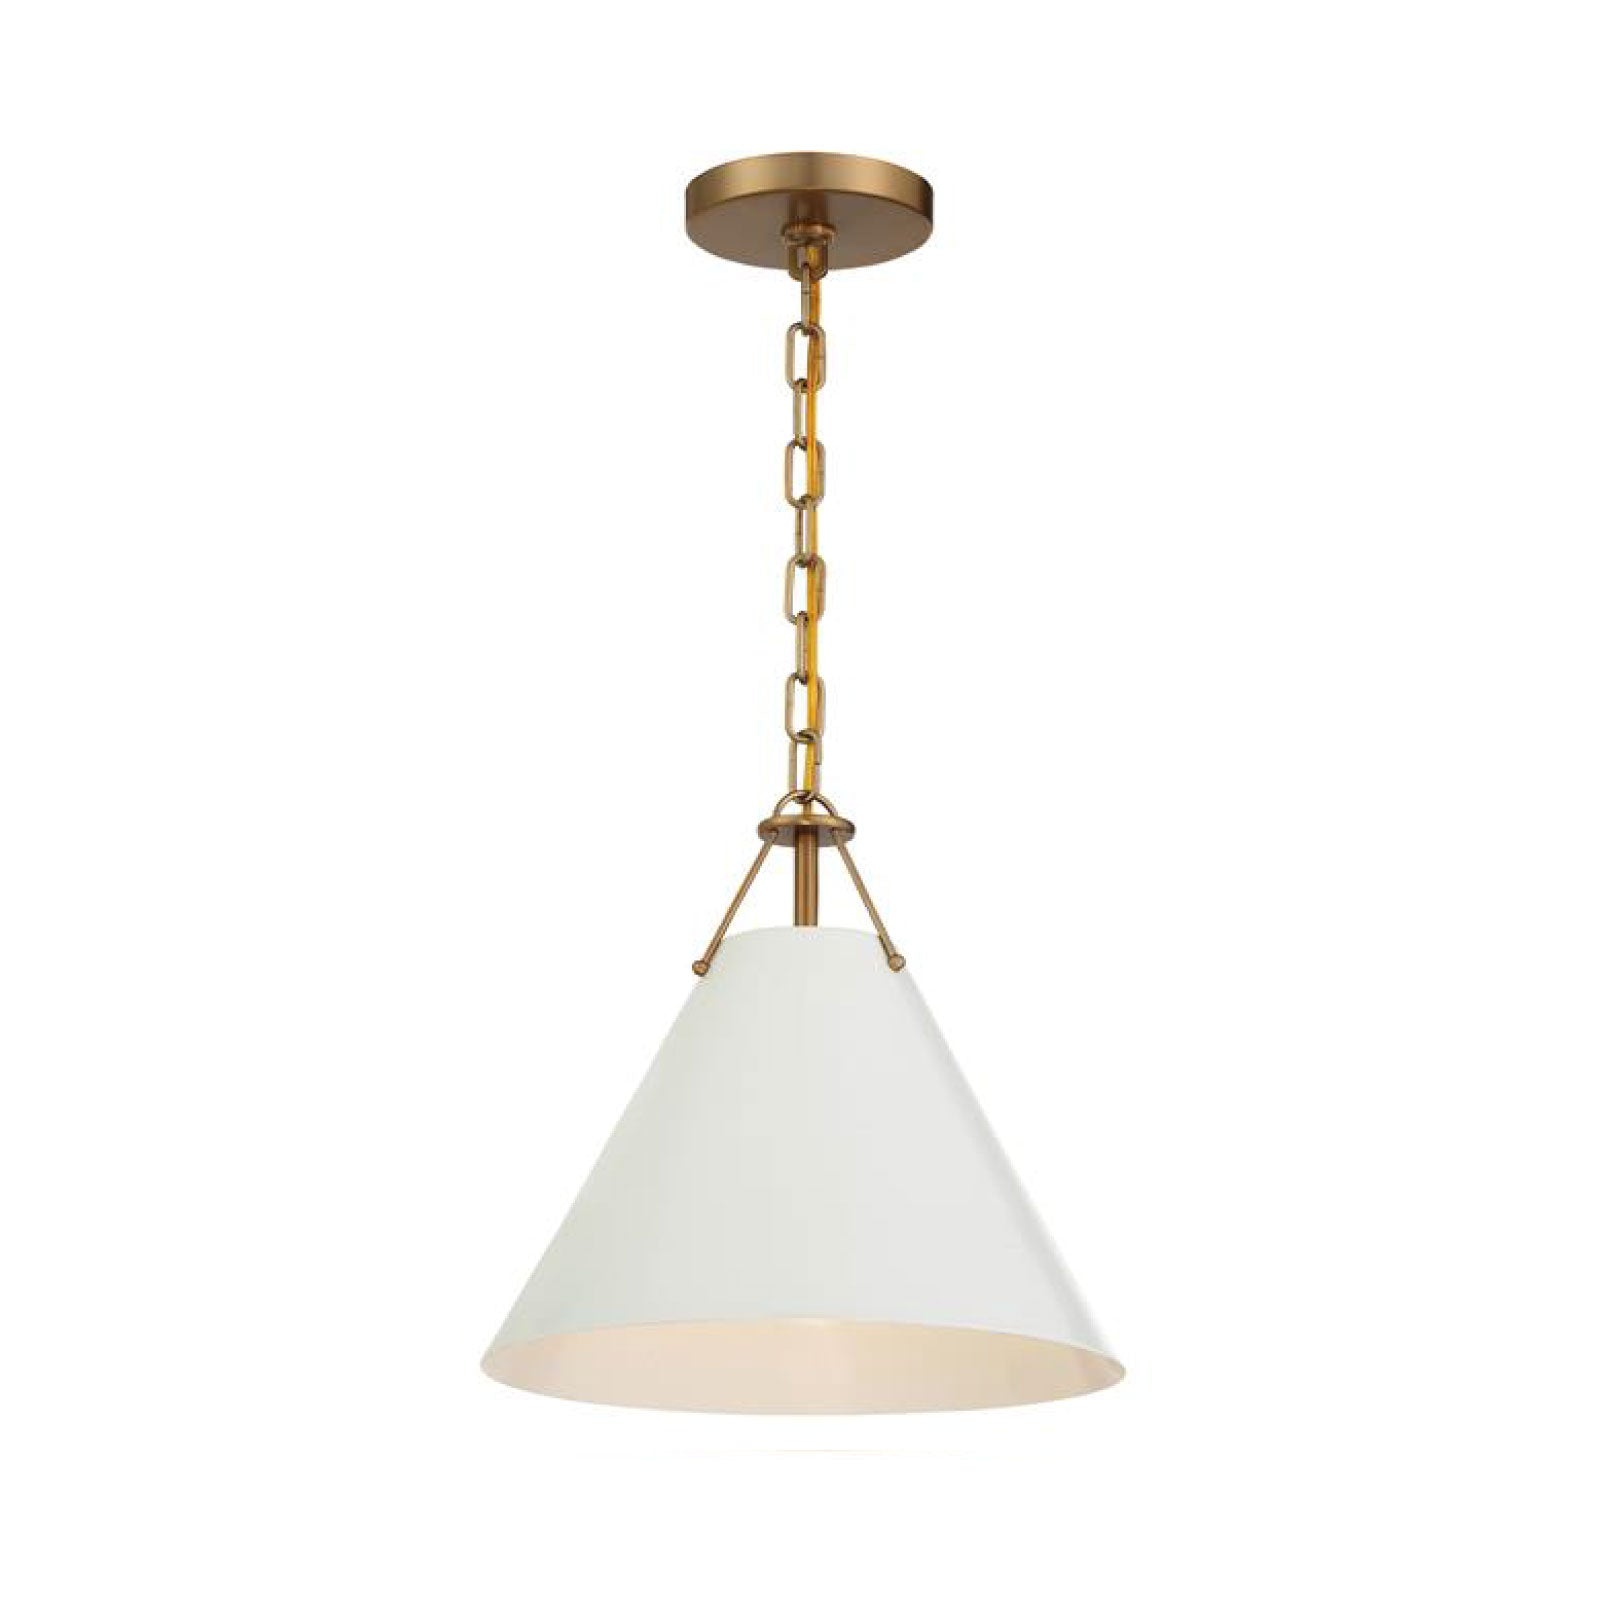 Randolph 1 Light Pendant in Vibrant Gold